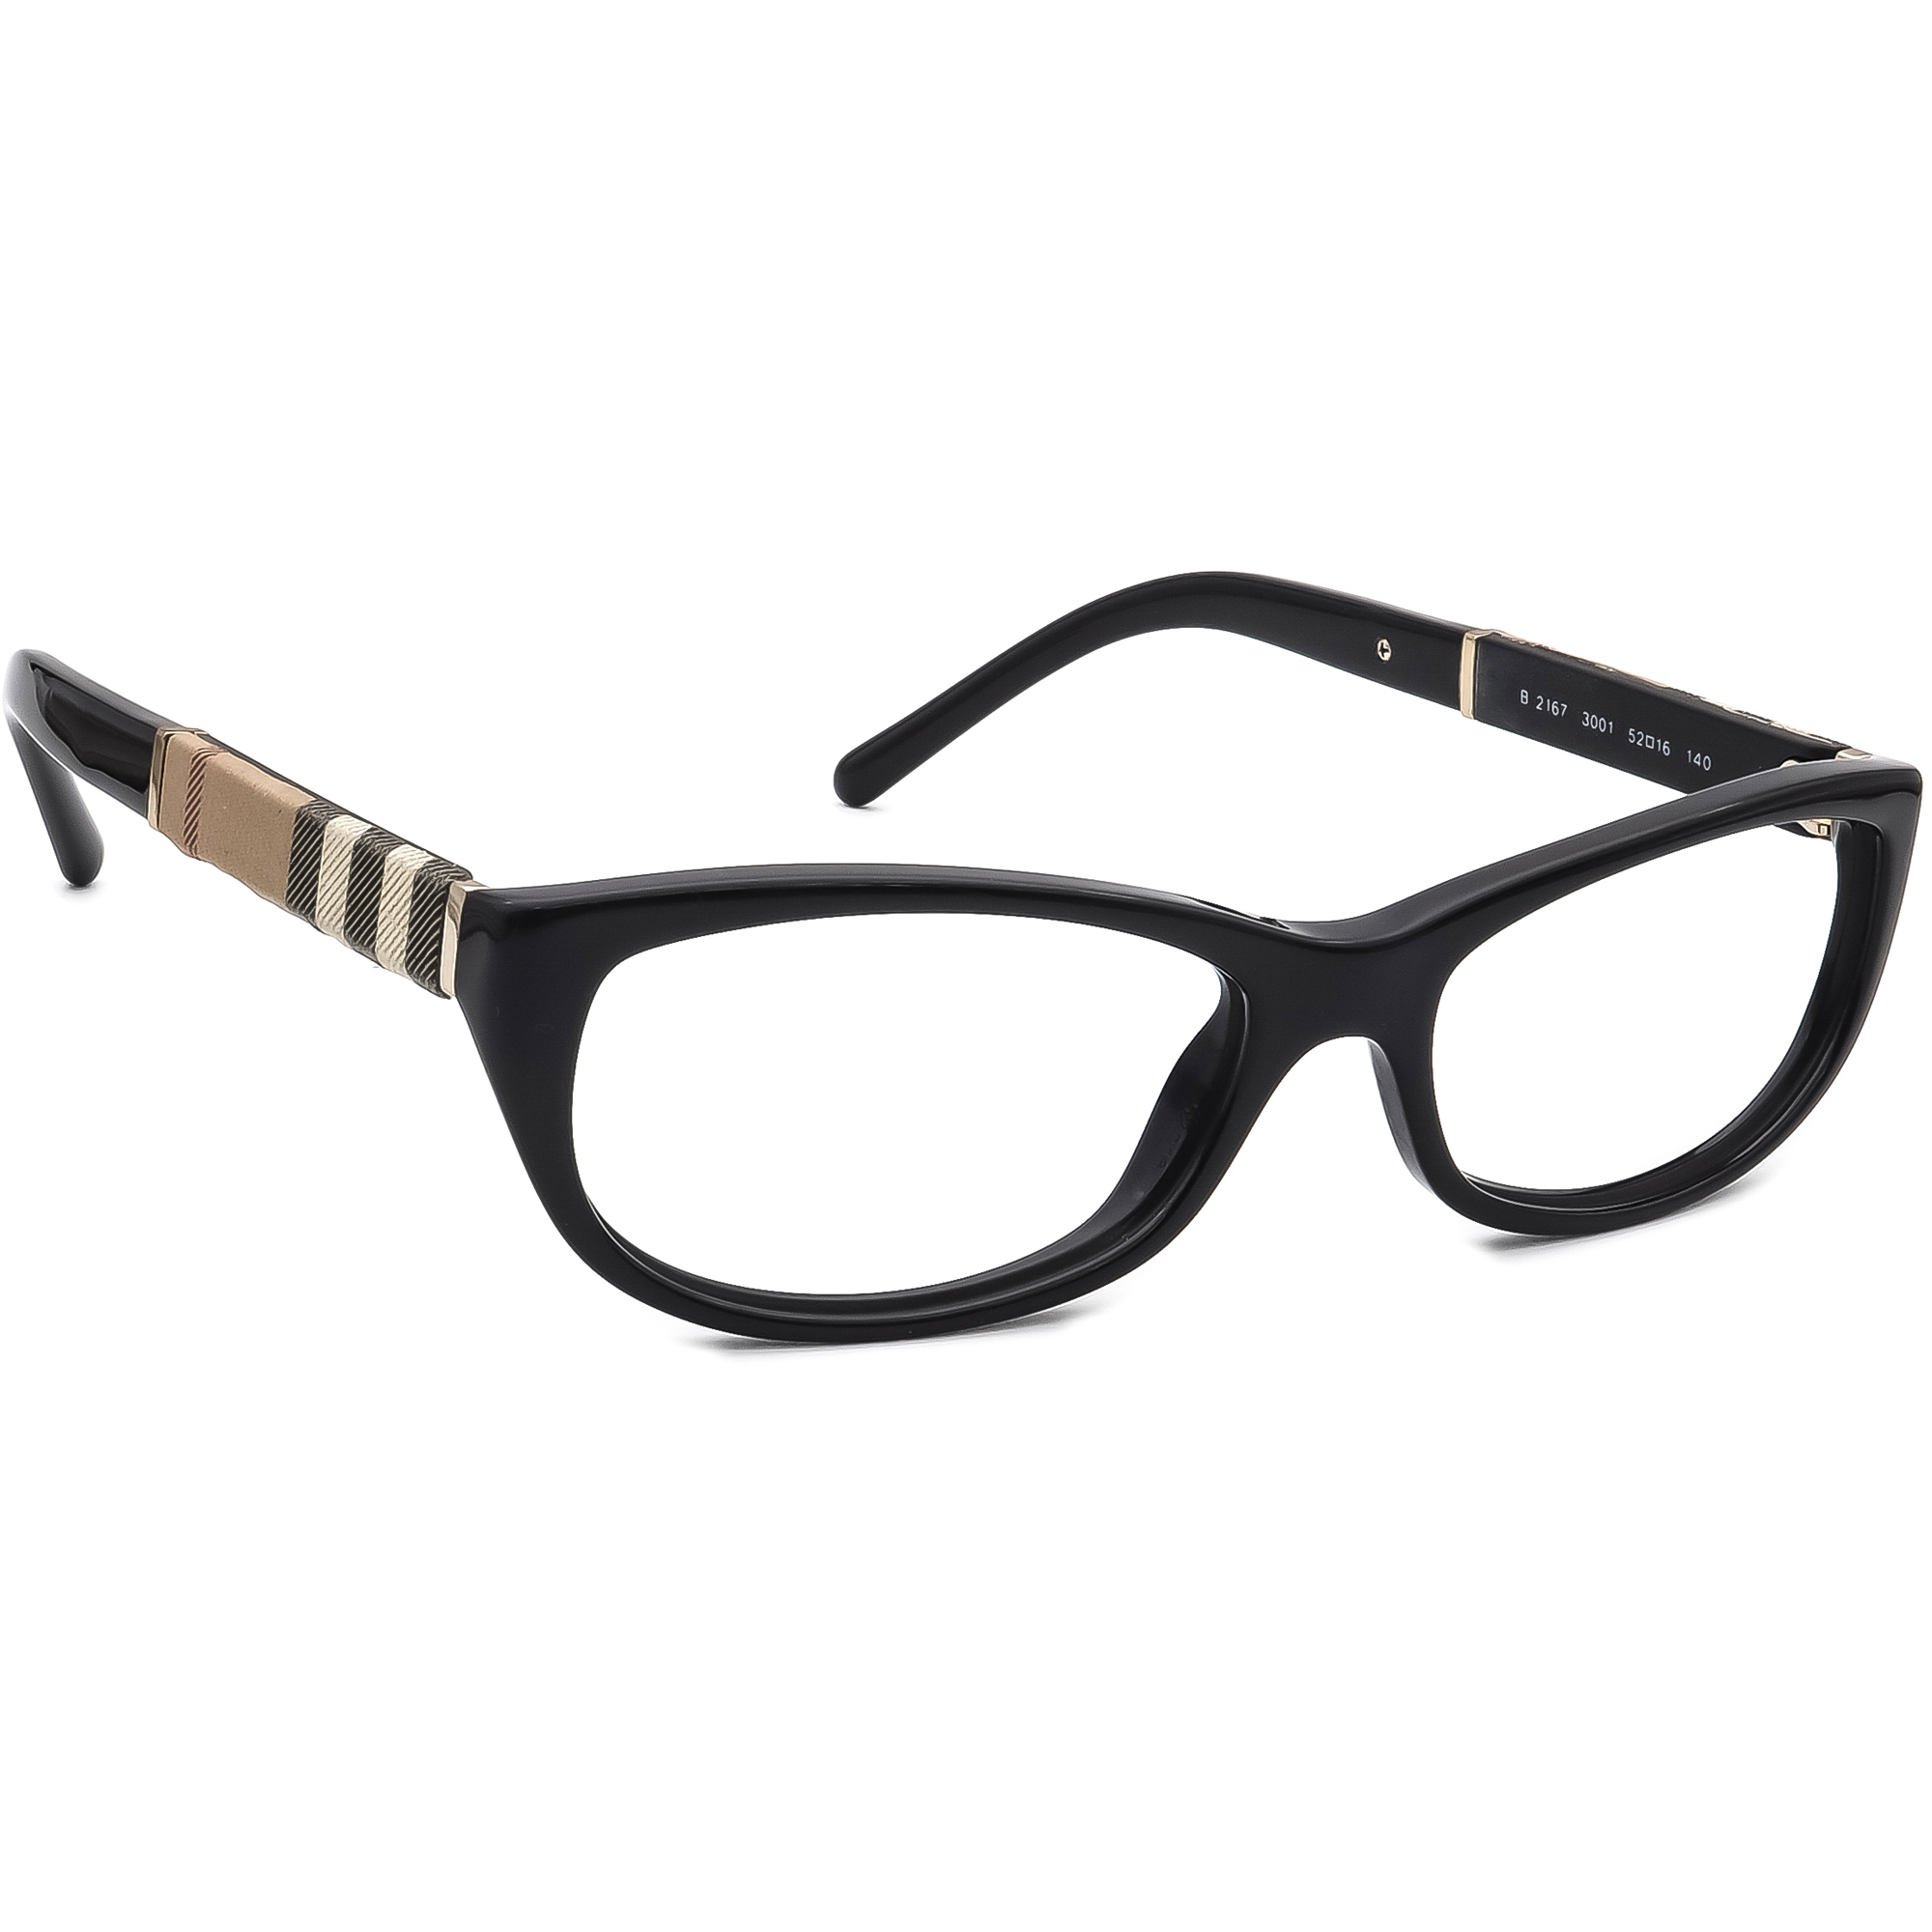 Burberry B 2167 3001 Eyeglasses